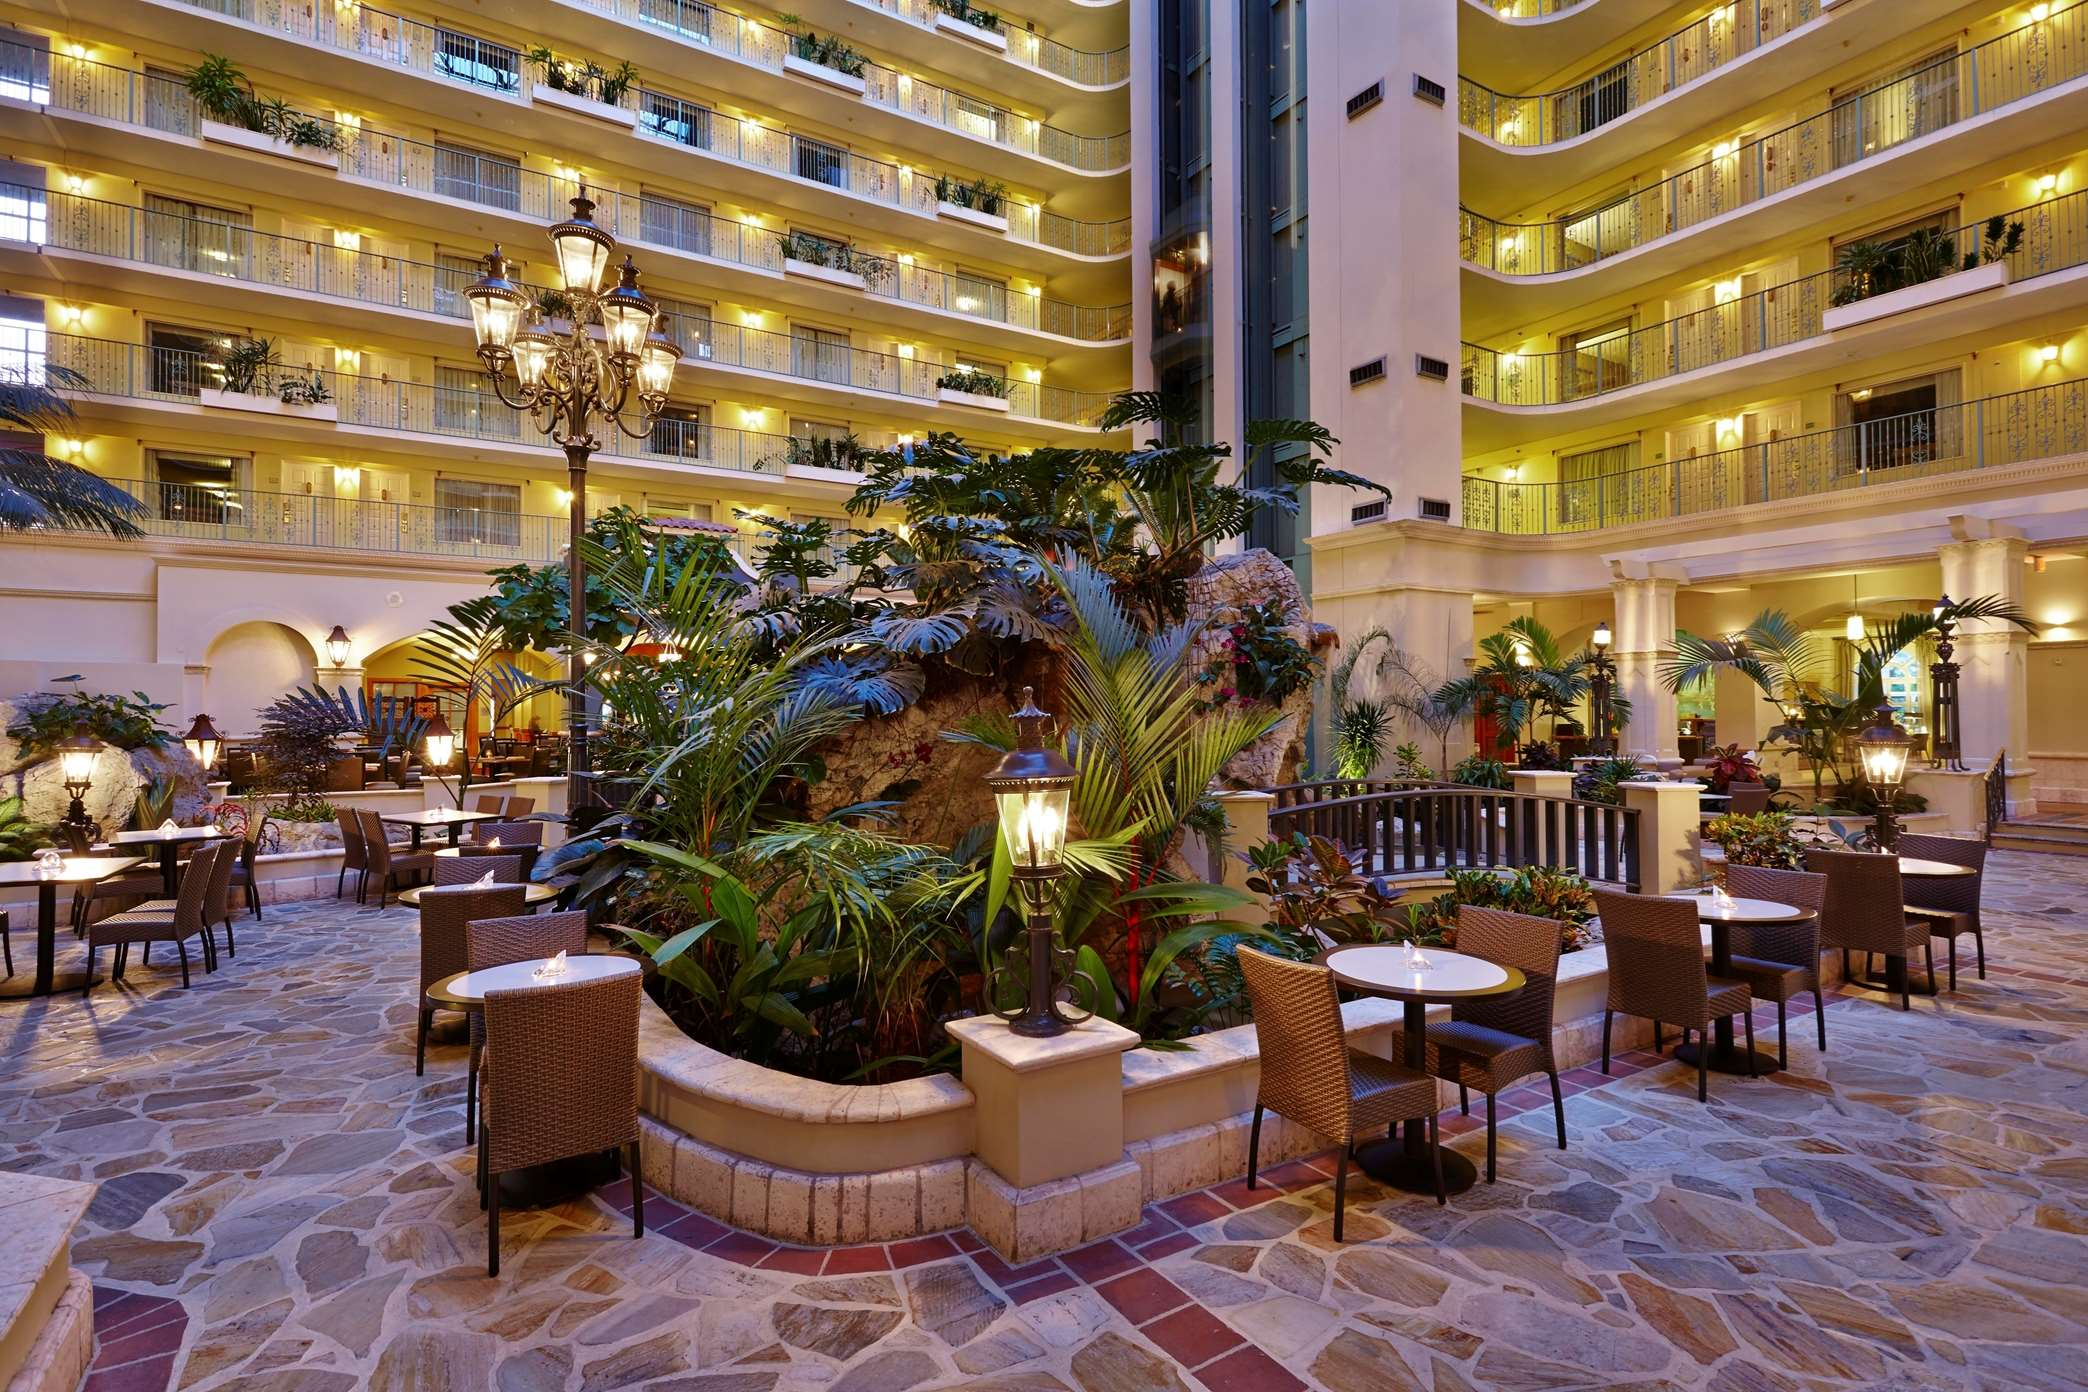 Embassy Suites by Hilton Fort Lauderdale 17th Street image 2